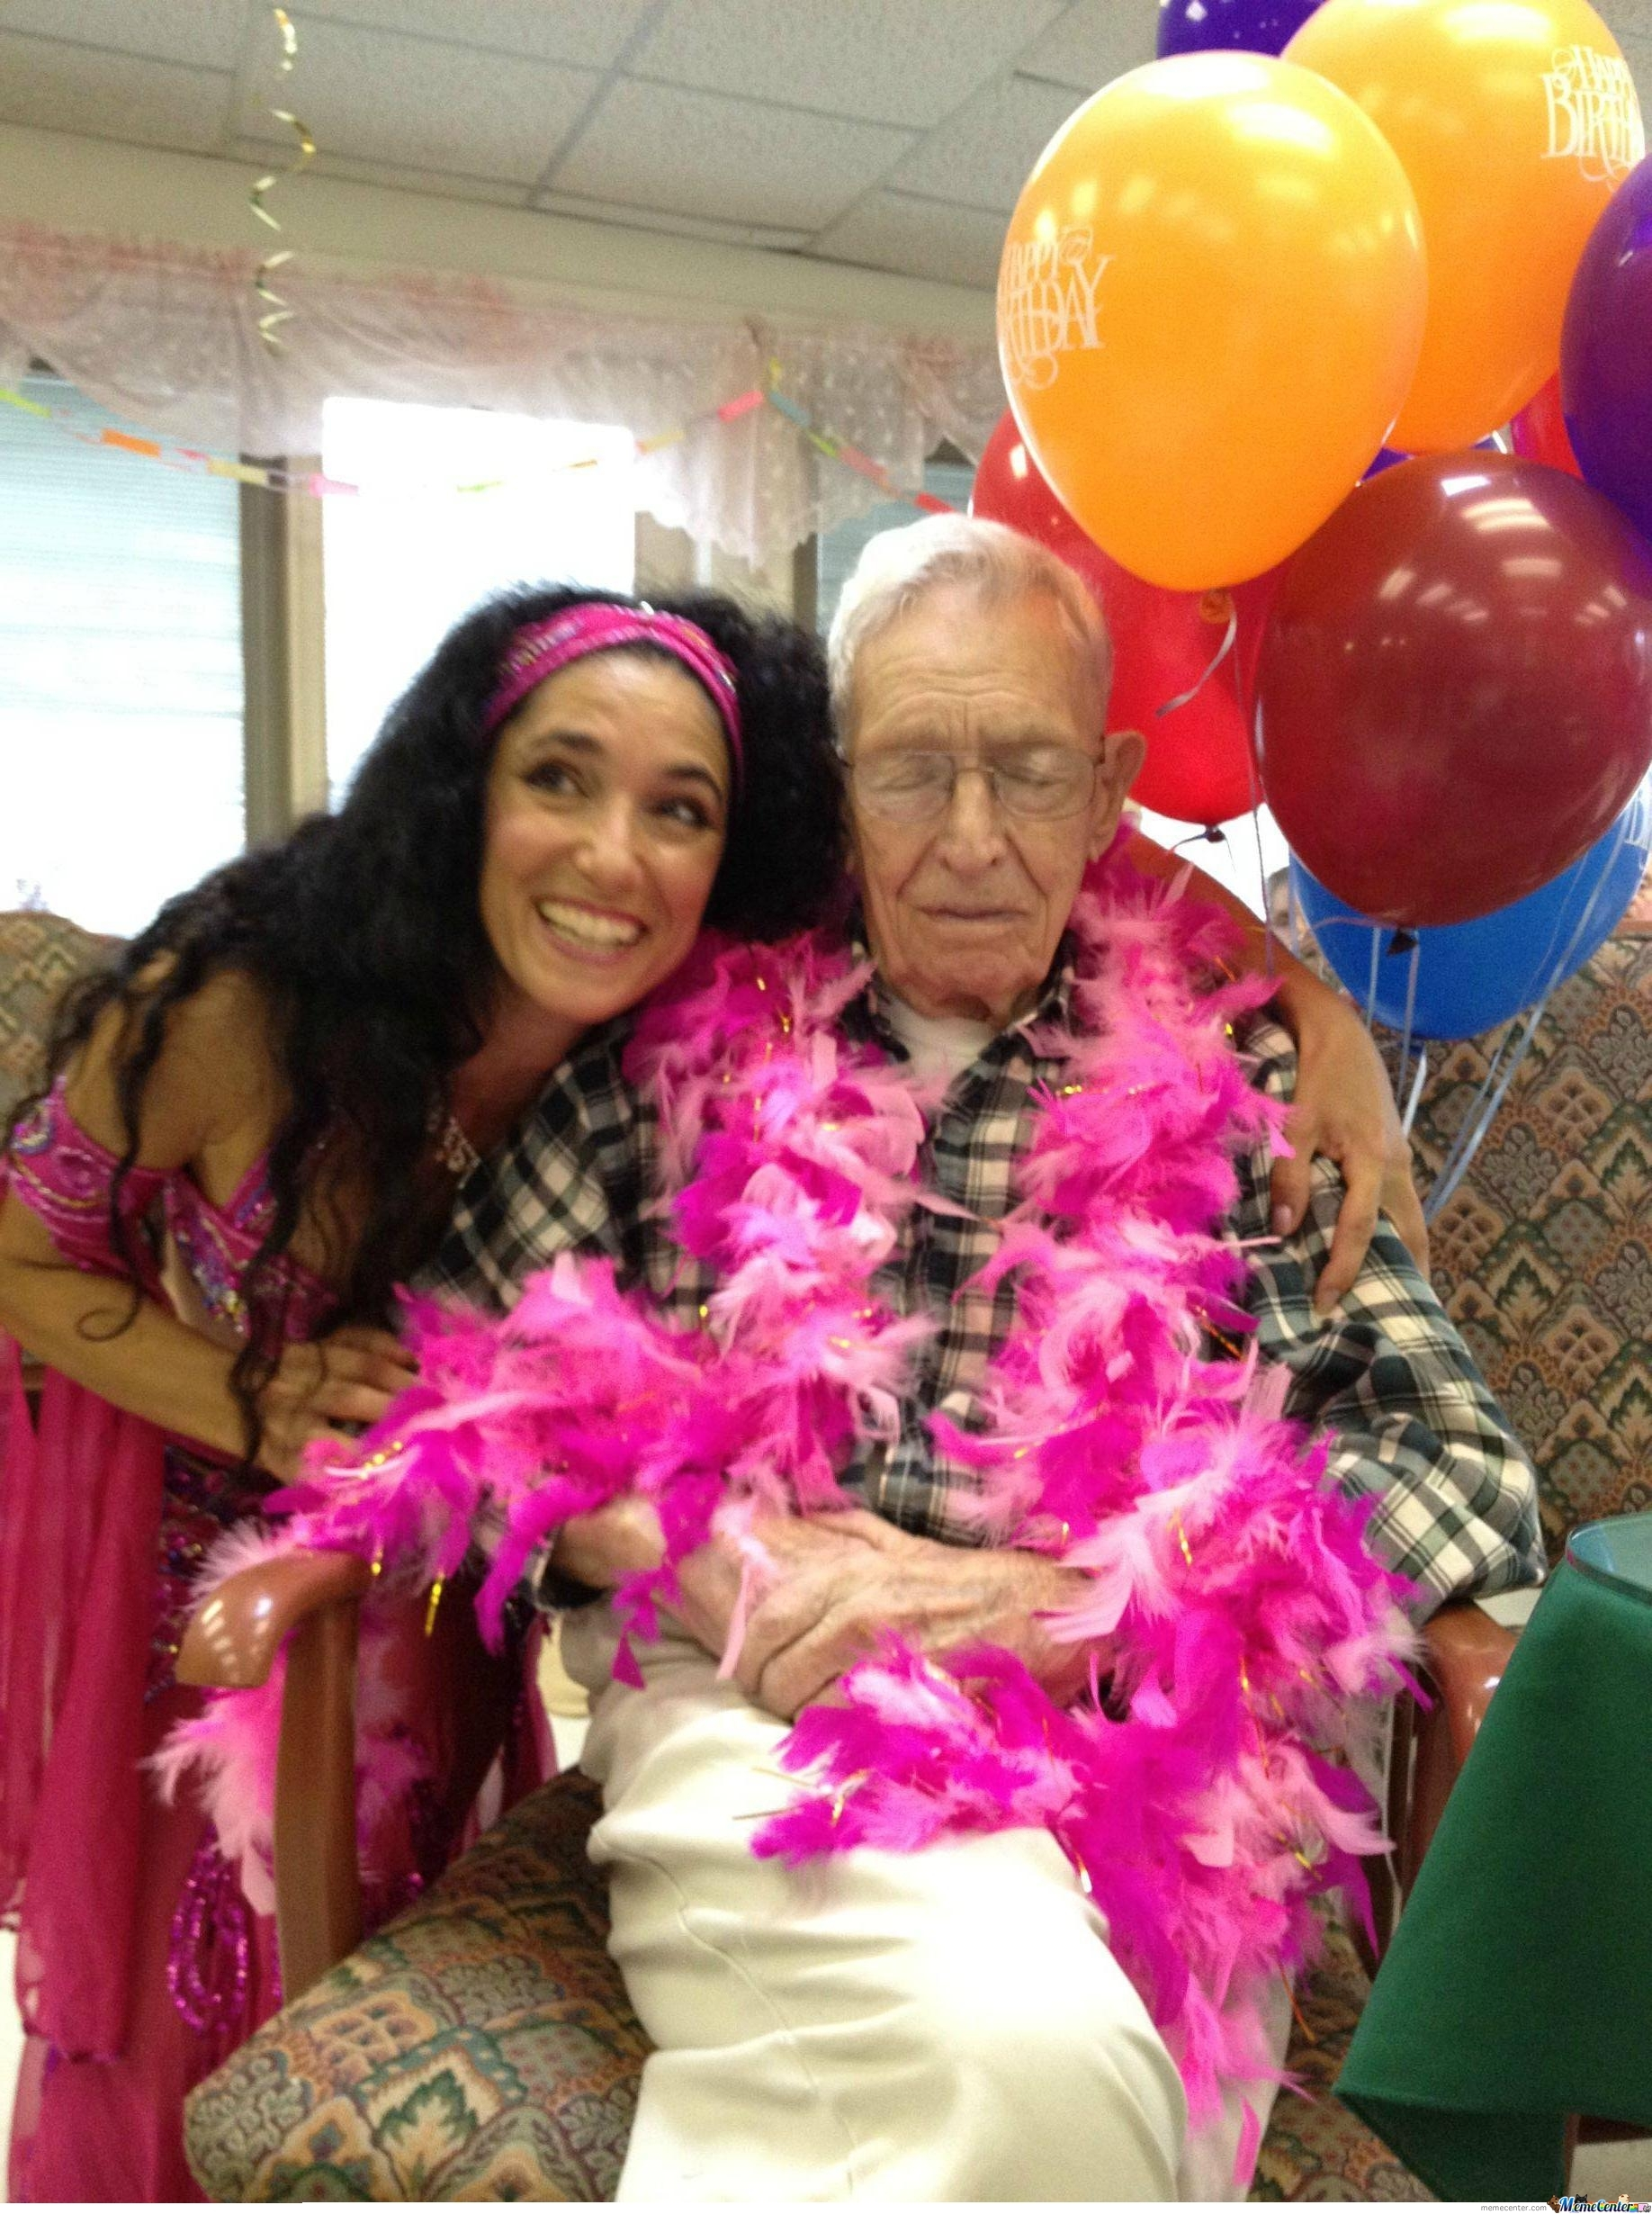 A Man Where I Worked Turned 100 Today. His Birthday Wish Was To Have A Cold Beer And A Belly Dancer. Wish Granted.  What A Guy